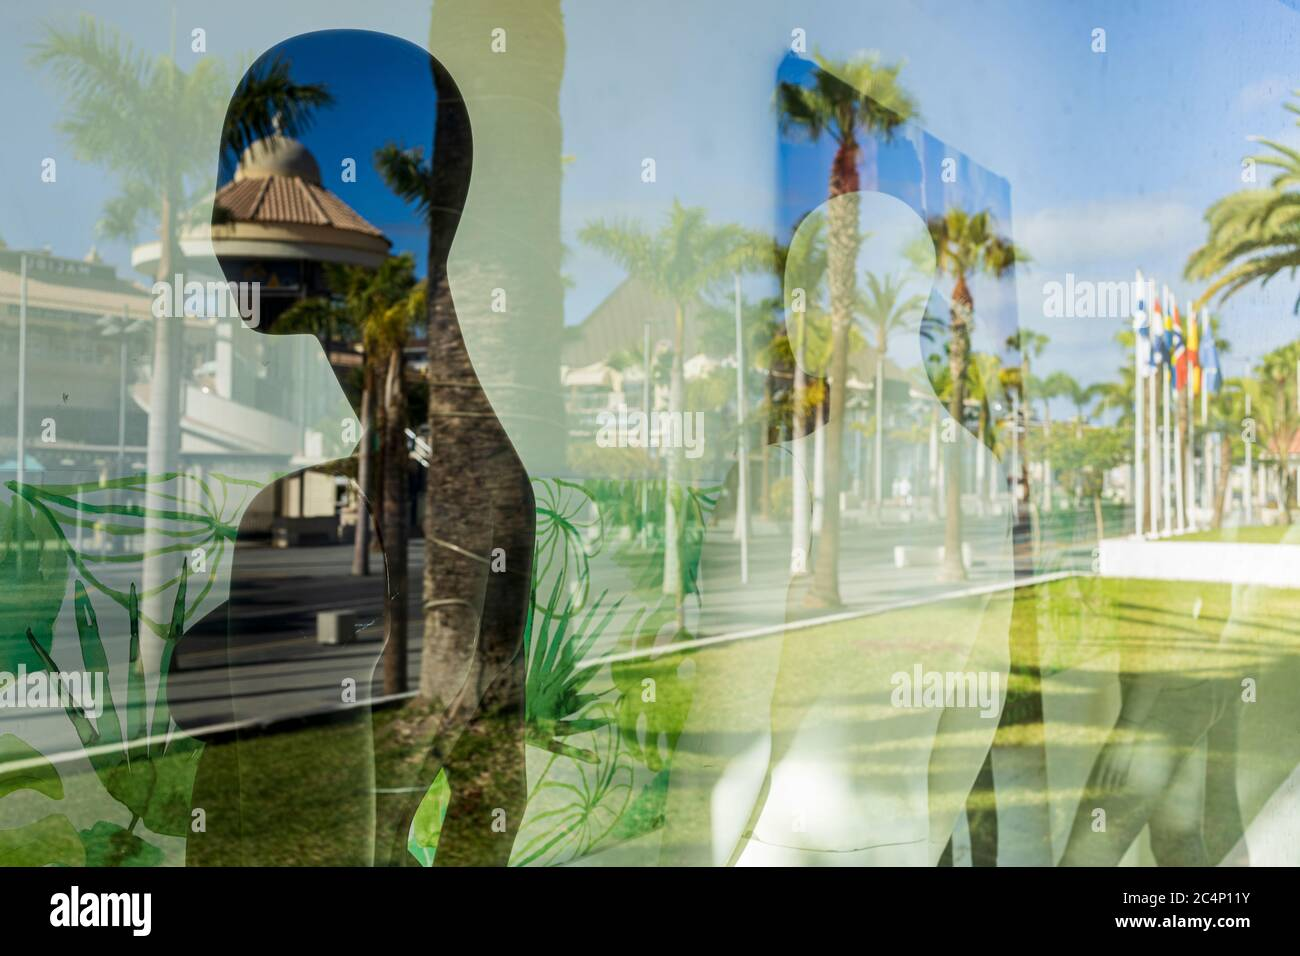 Reflections in windows along the Avenida de Las Américas, nicknamed the Golden Mile, a shoppers paradise in Playa de Las Americas, in a time of practically zero tourism with hotels still closed, most shops and restaurants shut, a few that are open struggling to attract some local residents. Playa de Las Americas, Tenerife, Canary Islands, Spain. 27 June 2020. Stock Photo